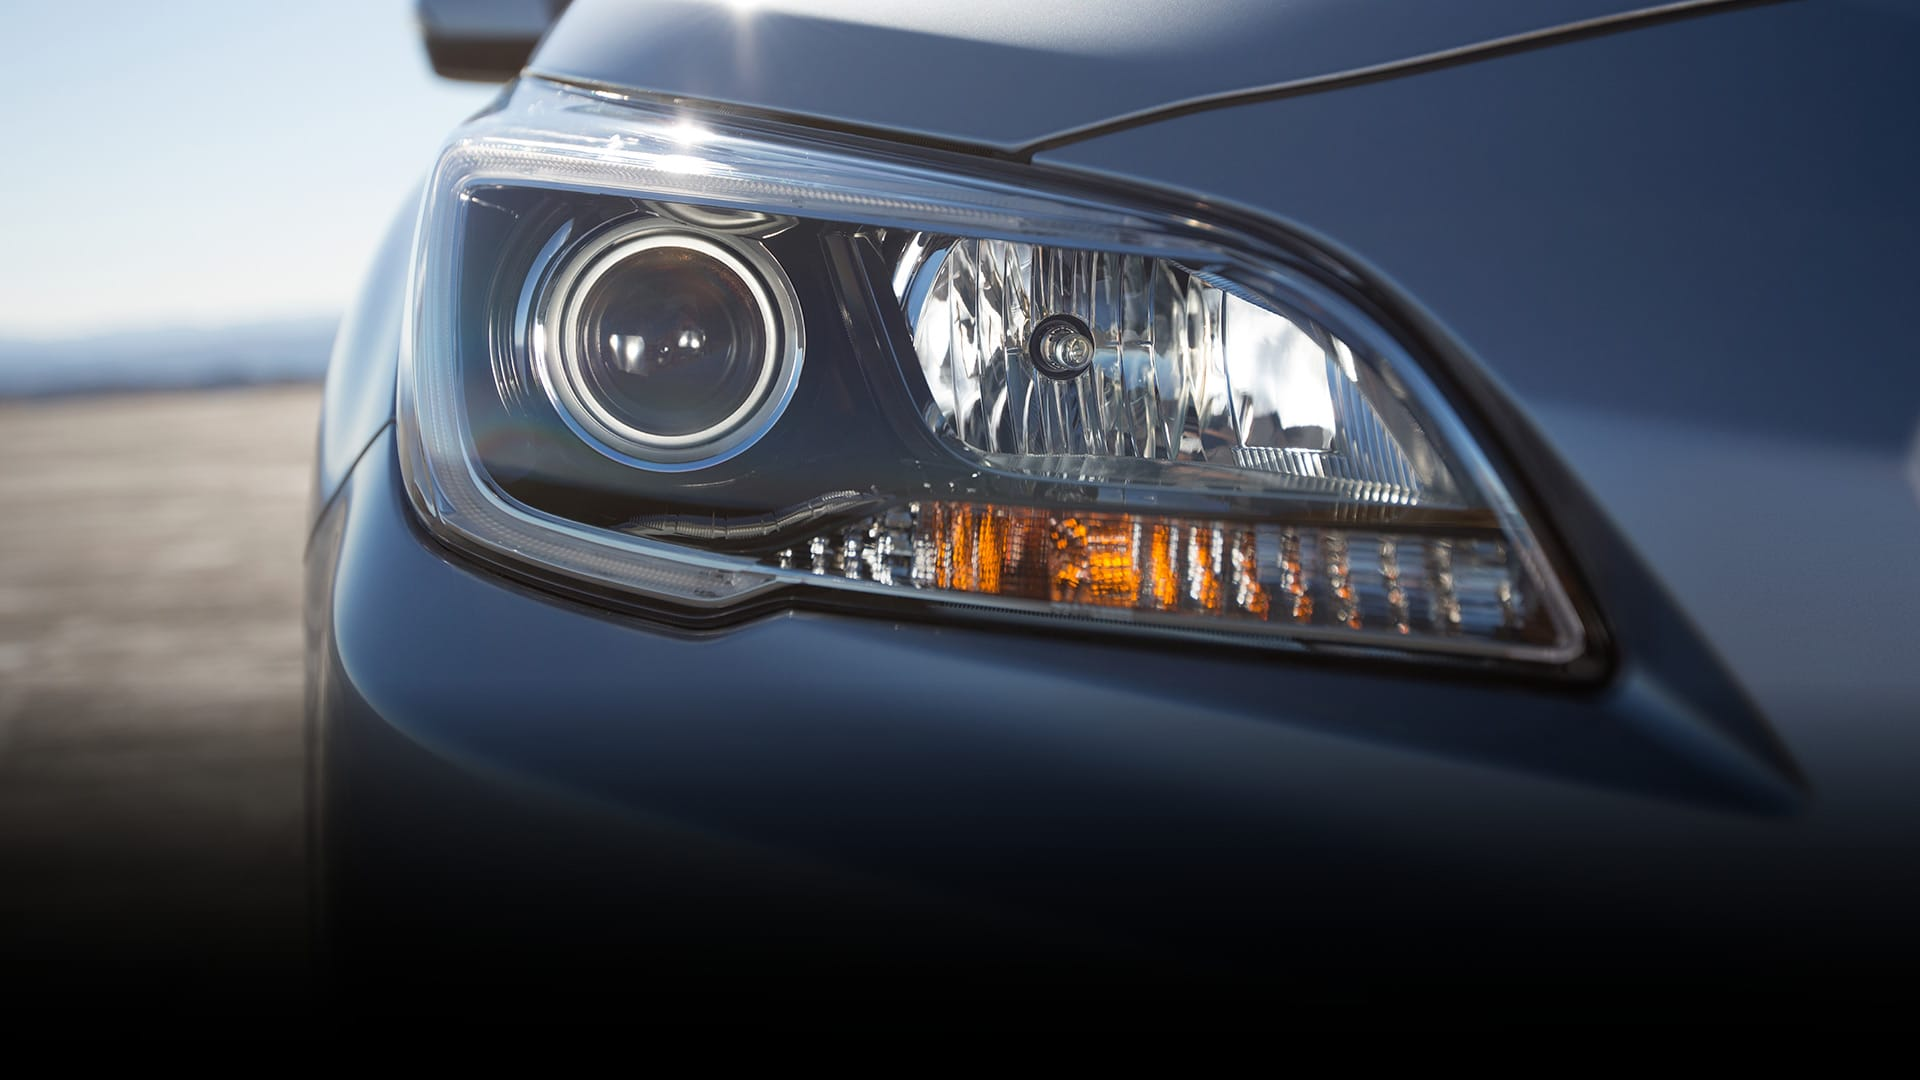 Considerably brighter, standard HID headlights on the 3.6R supply extra illumination for darker roads.